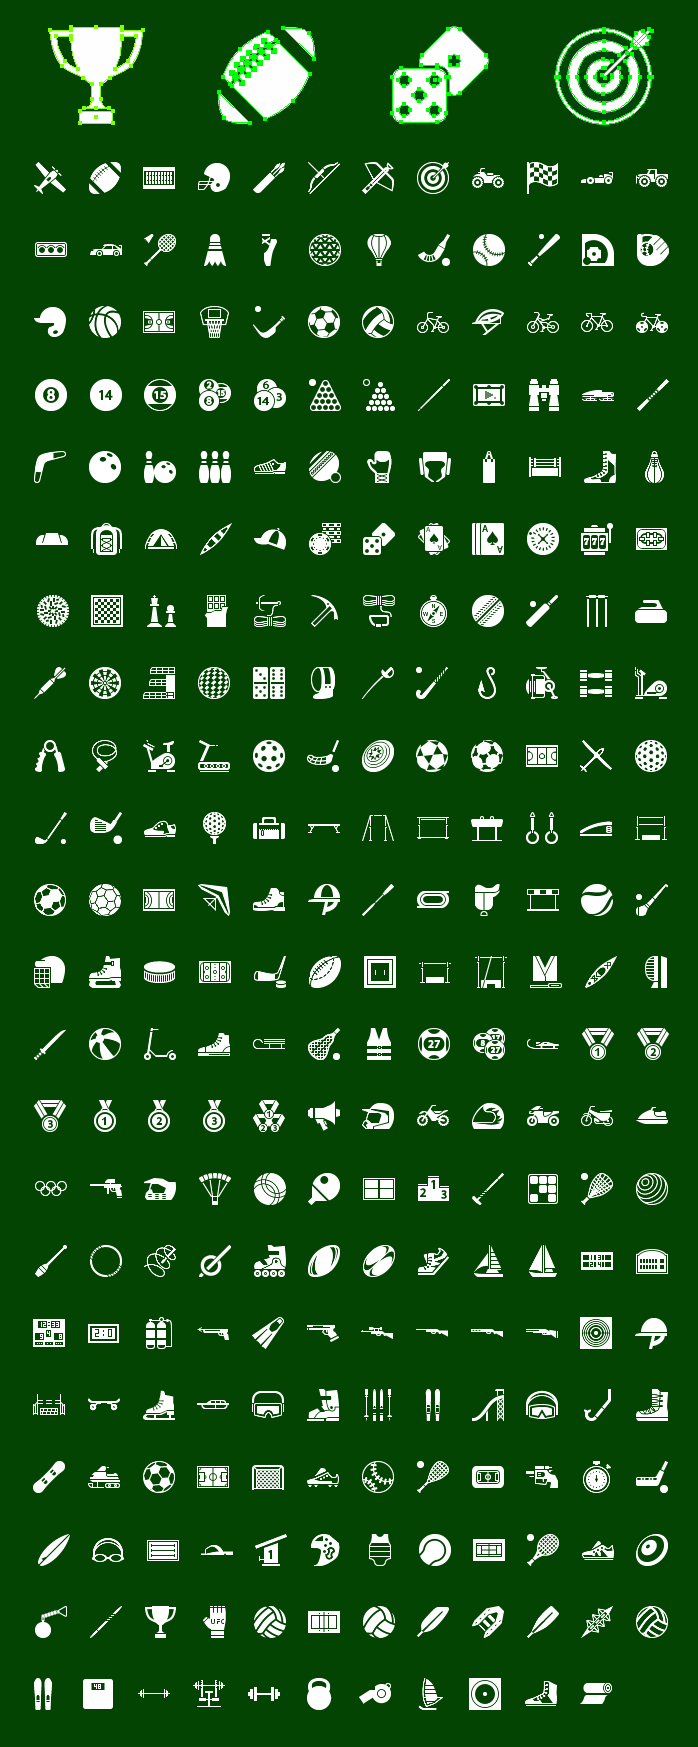 Icons-Land Metro Sport Vector Icons Screenshot